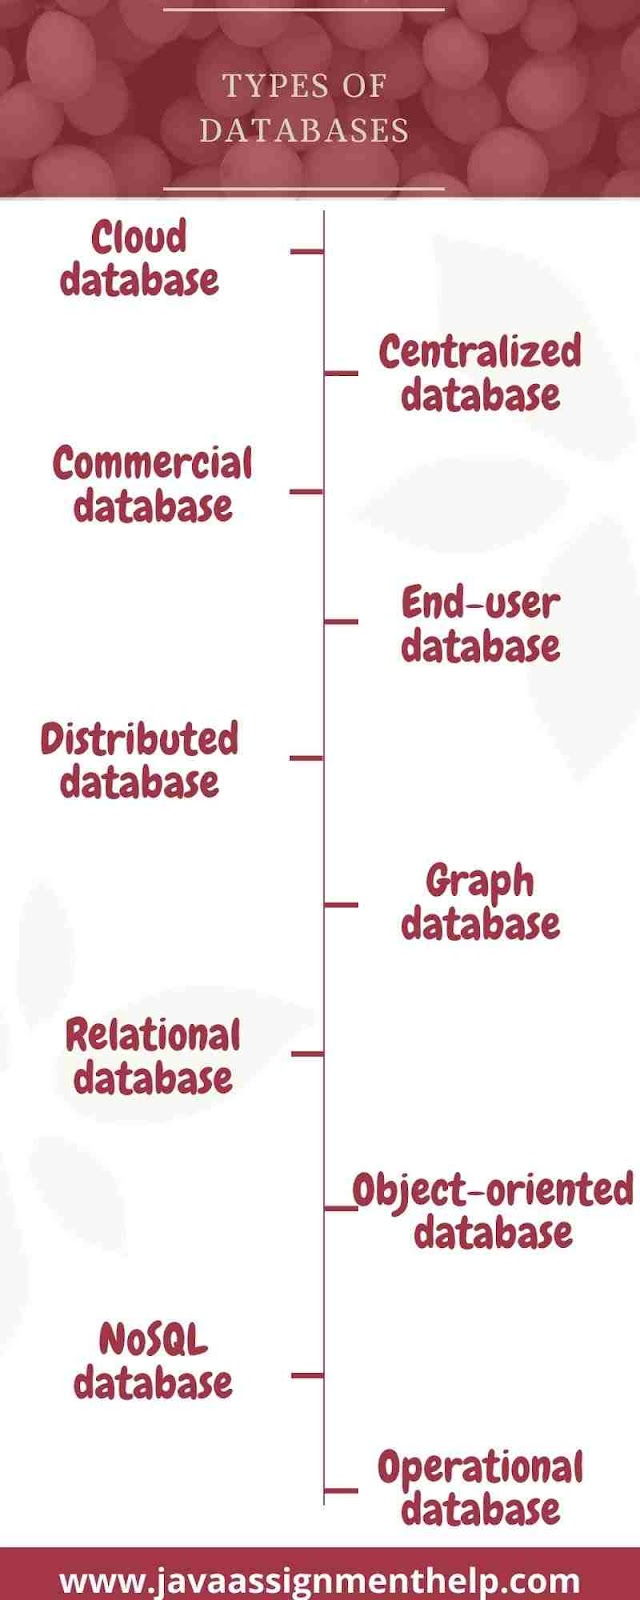 infographic types of databases